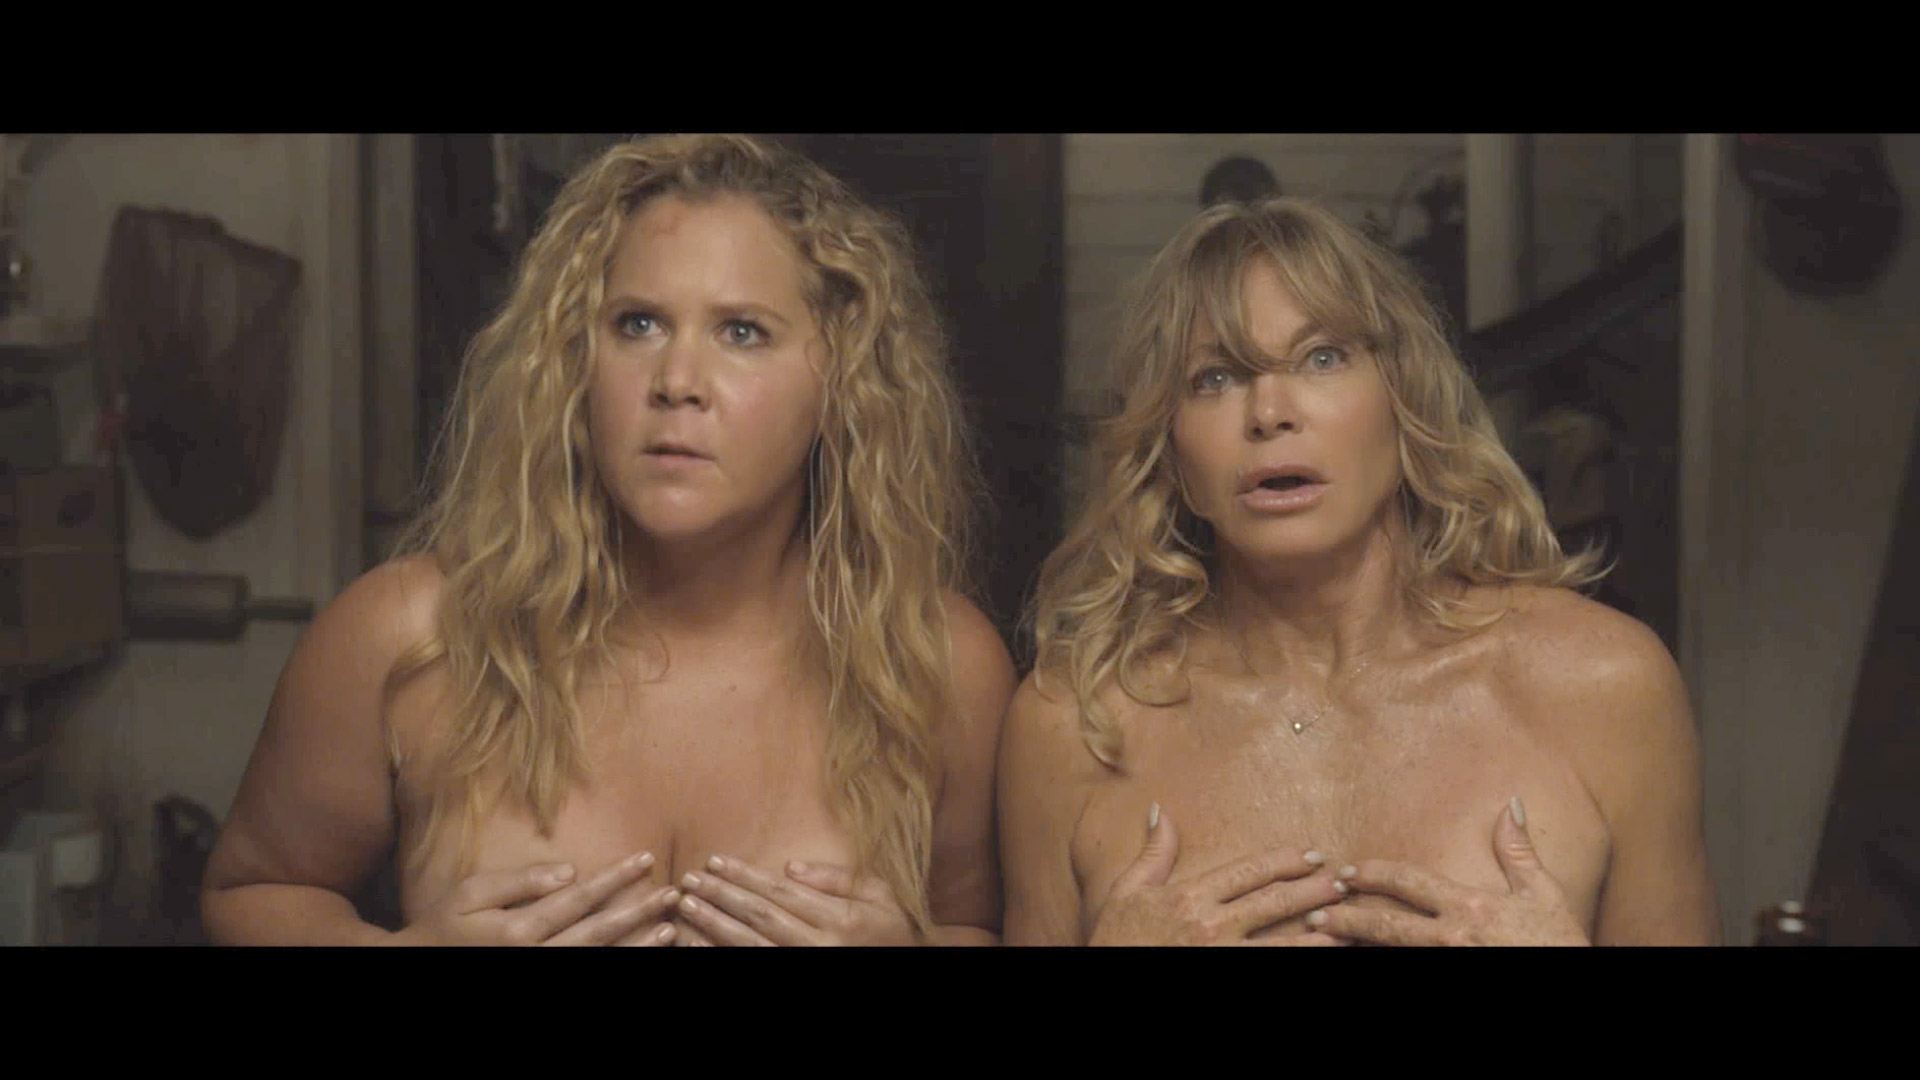 Amy schumer posed nude